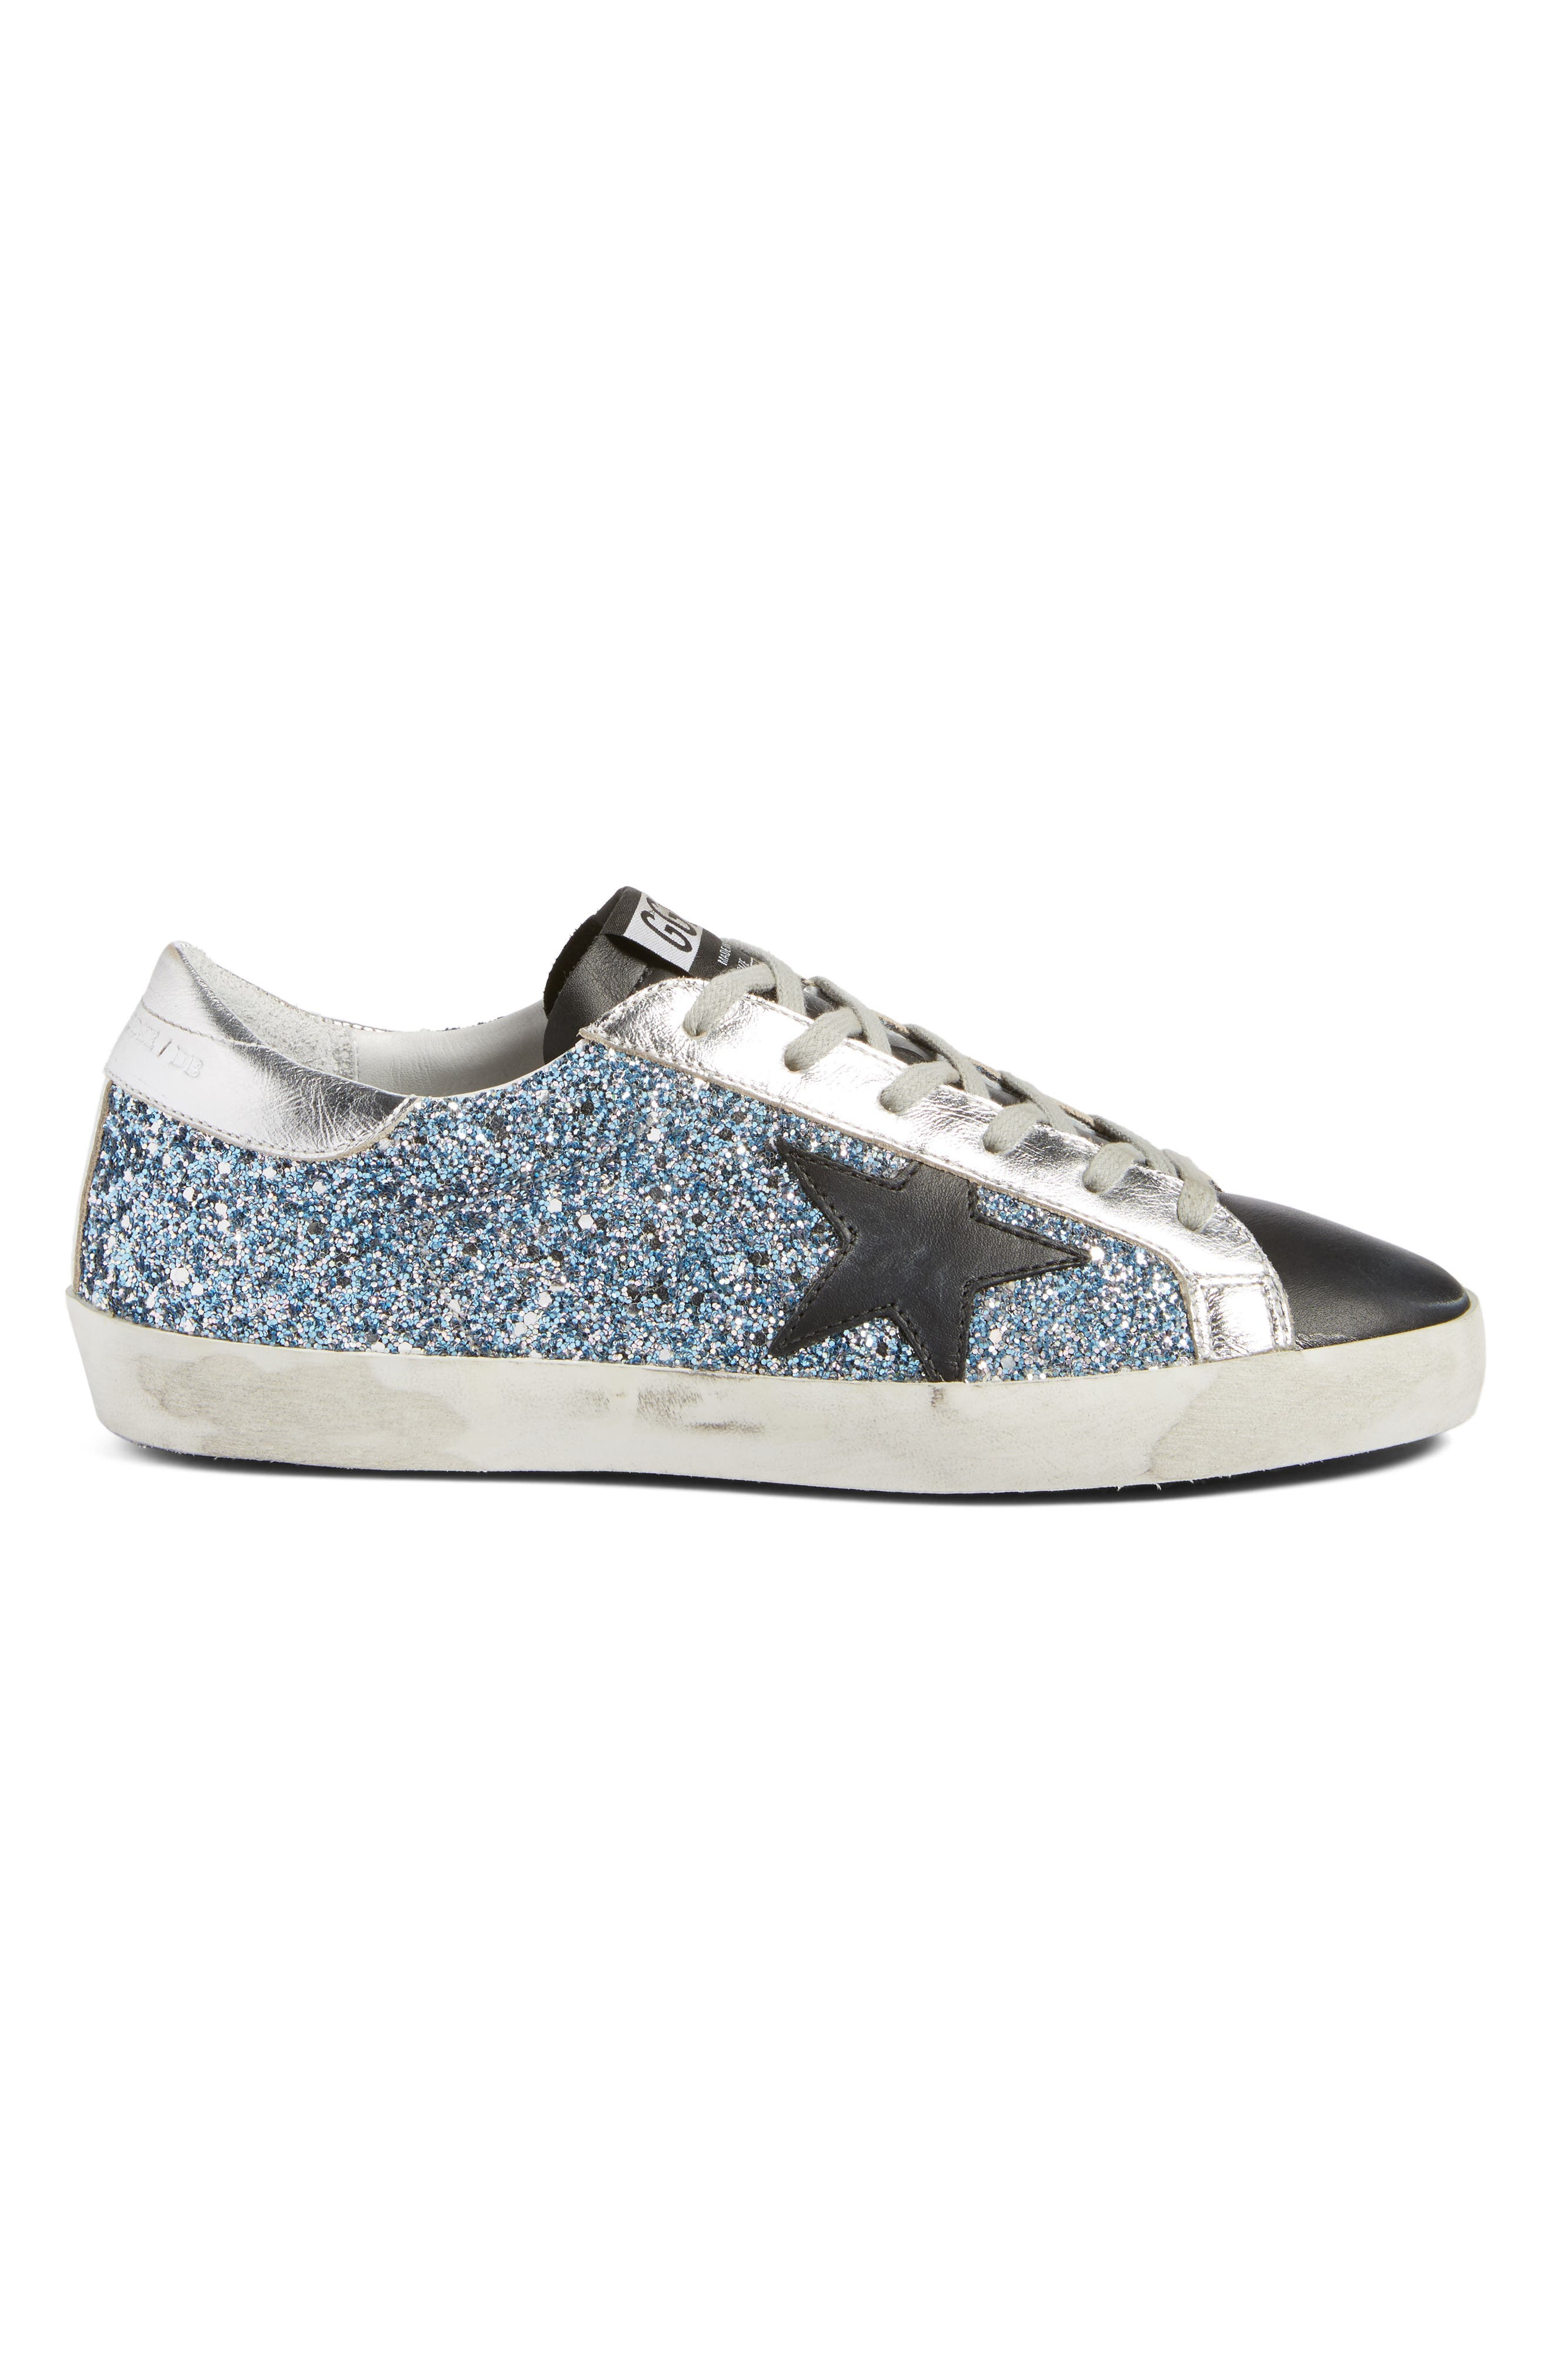 Superstar Glitter Sneaker,                             Alternate thumbnail 3, color,                             Blue Glitter